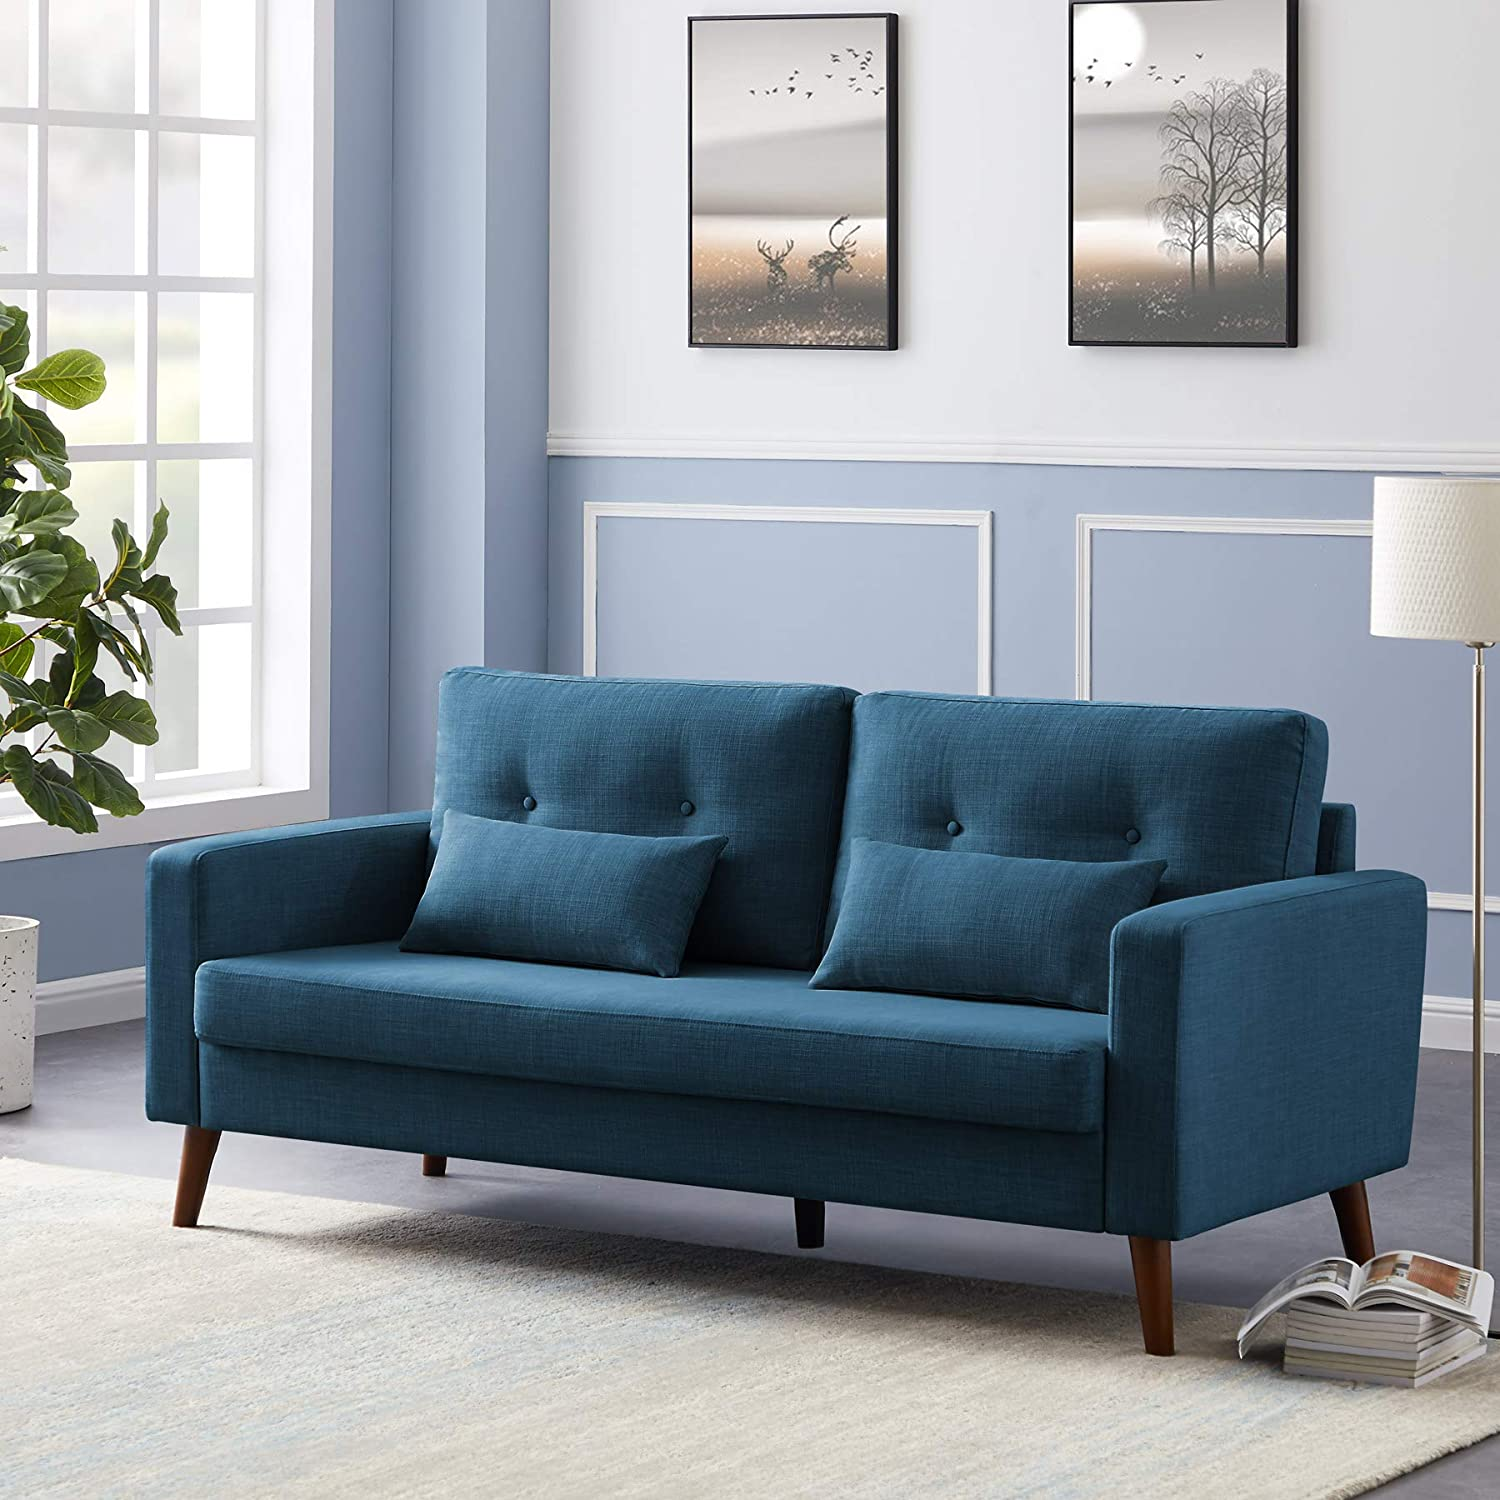 Buy Tribesigns Mid Century 20 Sofa Couch, Modern Linen Fabric 20 ...